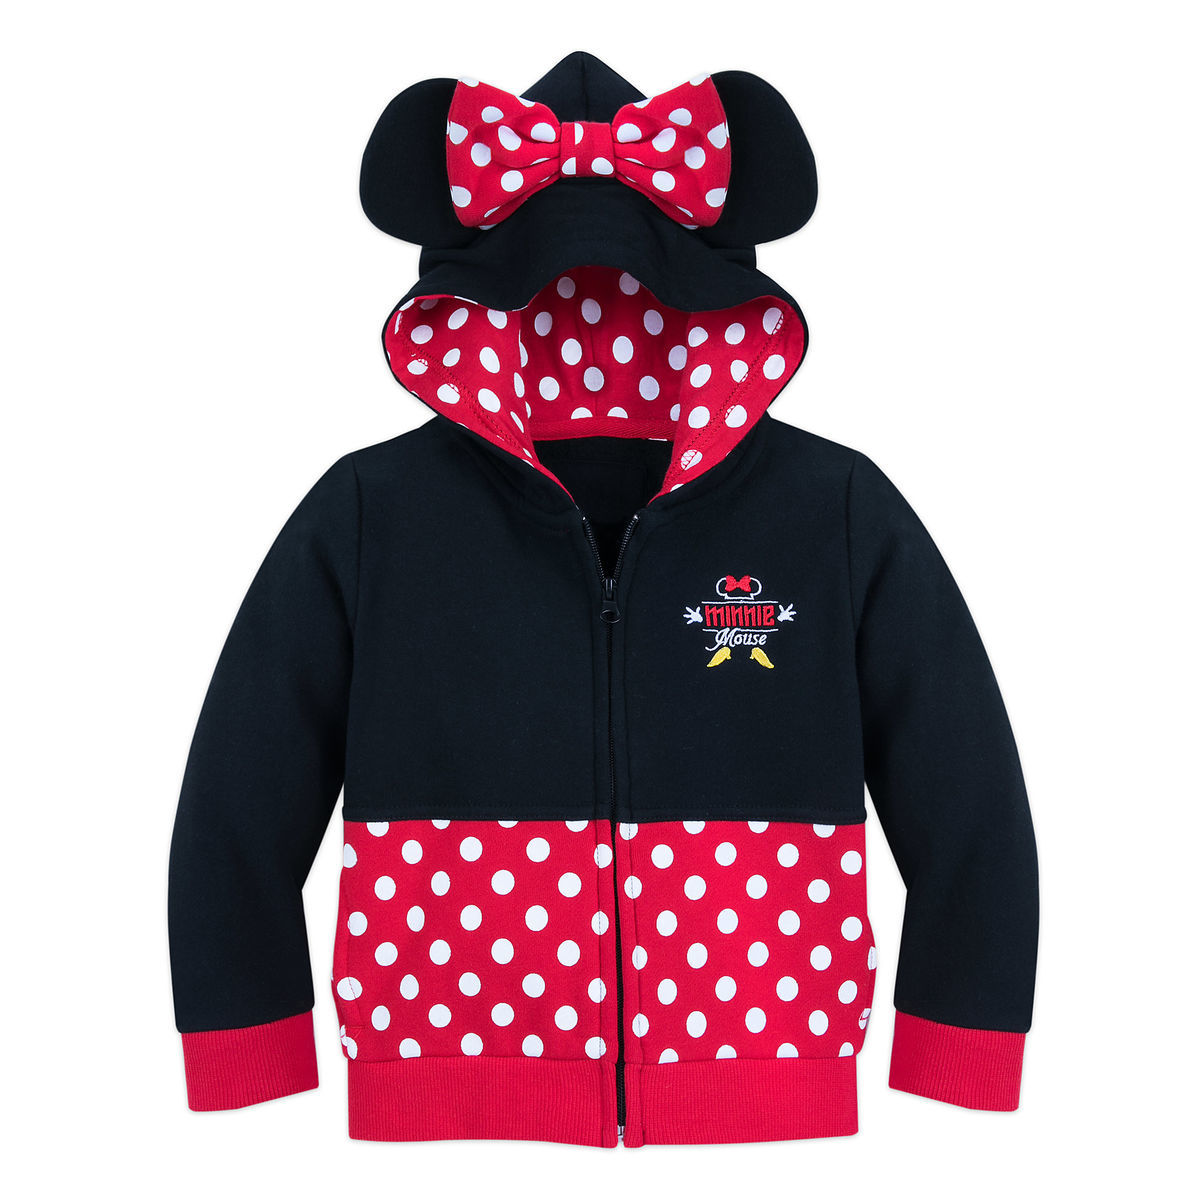 c6e3d5b15 I Am Minnie Mouse Zip-Up Hoodie for Toddlers